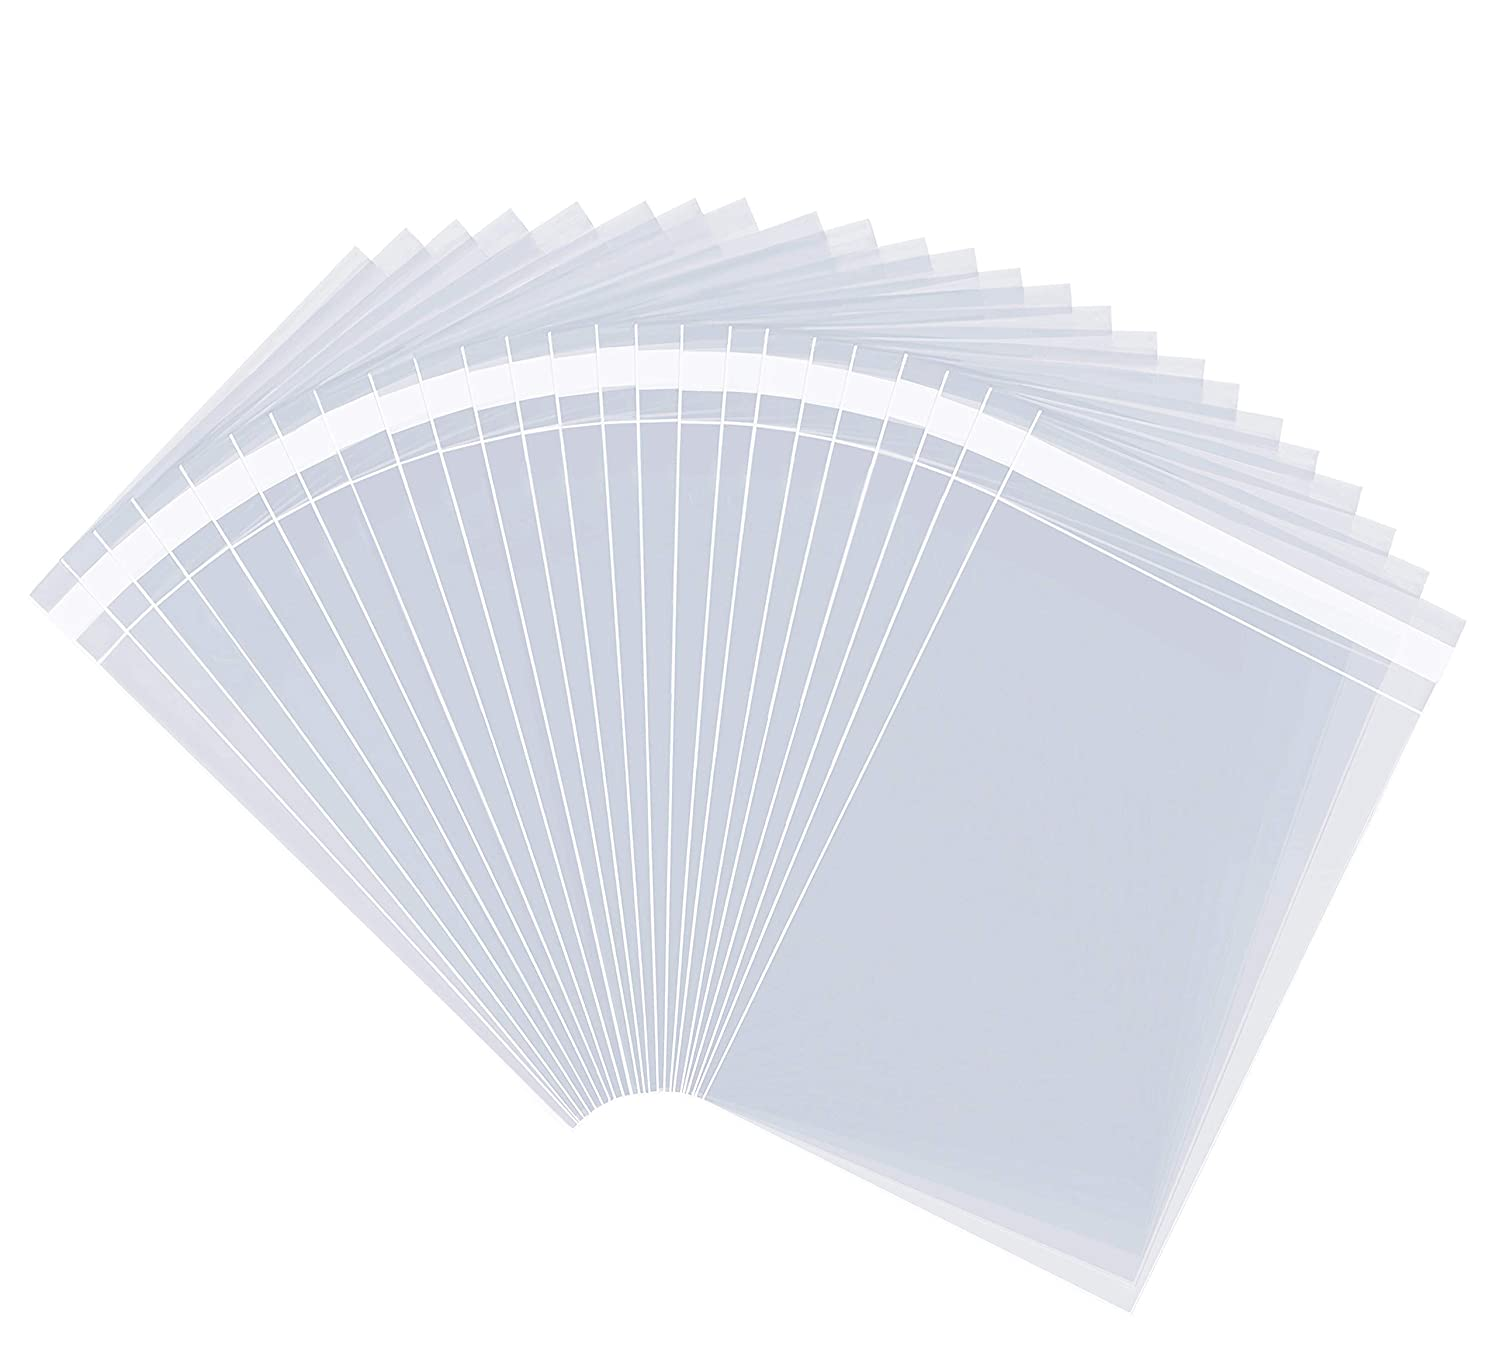 """8"""" X 10"""" (1000 Pack) Clear Resealable Cellophane Cello Bags Self Seal - Fits 8X10 Prints Photos Small Catalogs, Gifts, Arts & Crafts by Pack It Chic (More Sizes Available)"""